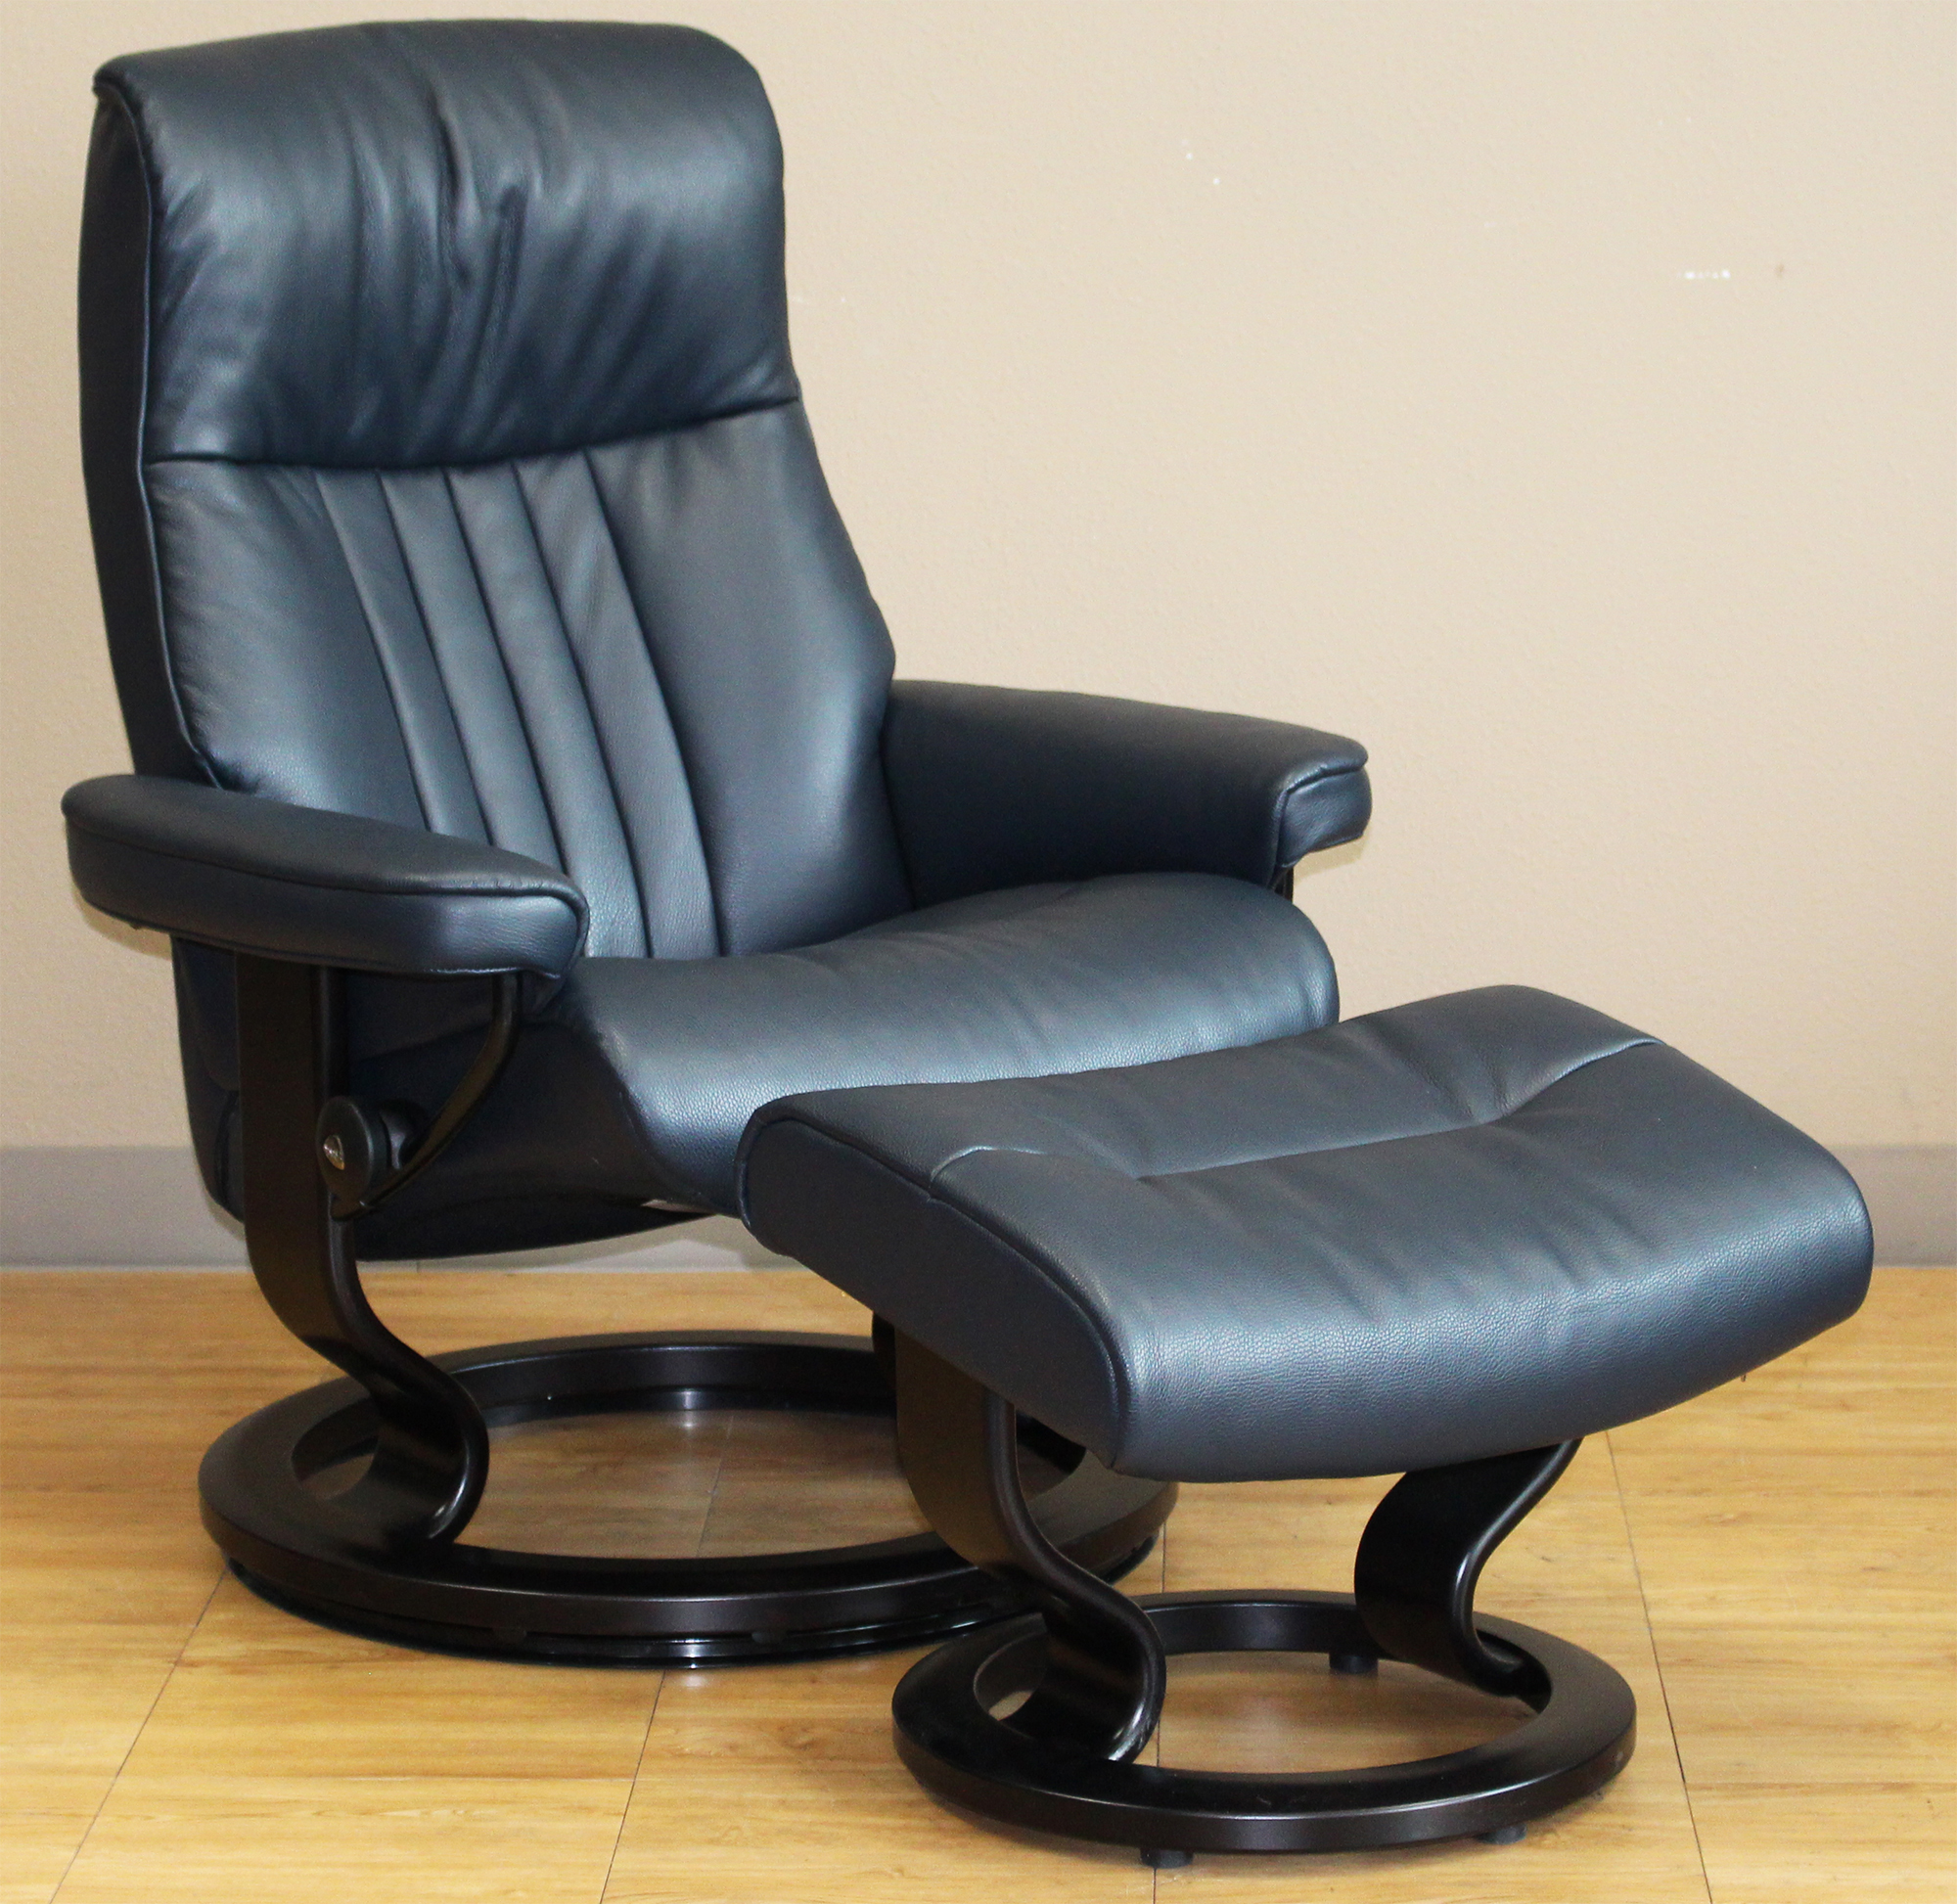 backstore with leather information and htm scandinavian ottoman fjords recliner chair ona ergonomic